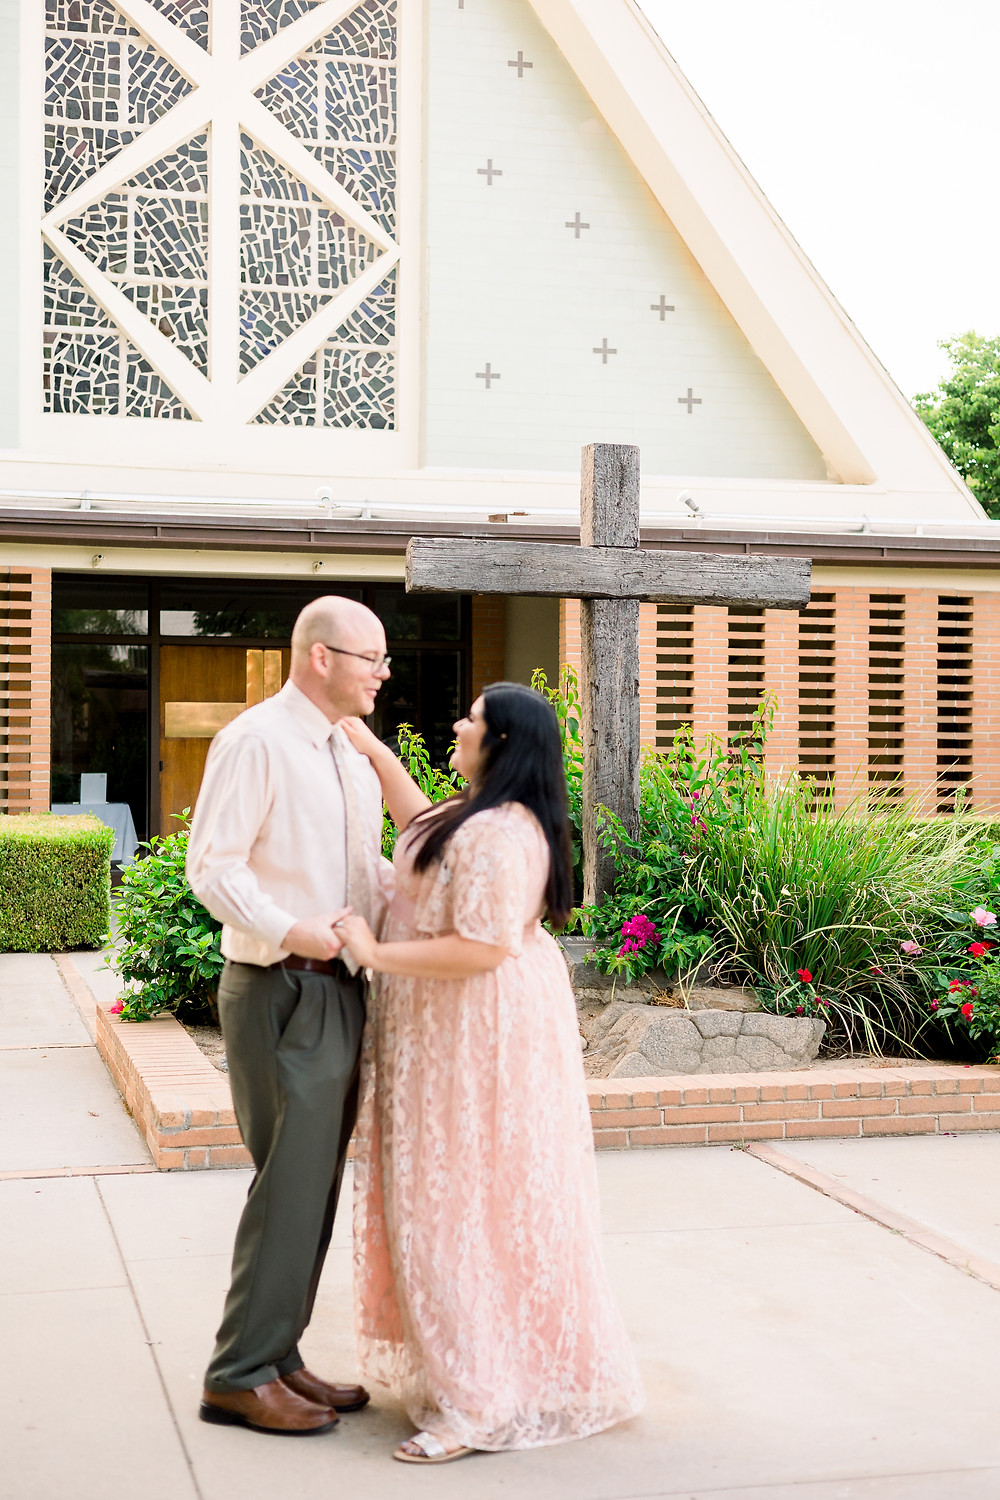 Engagement photography in Fresno, CA by Ashley Norton Photography